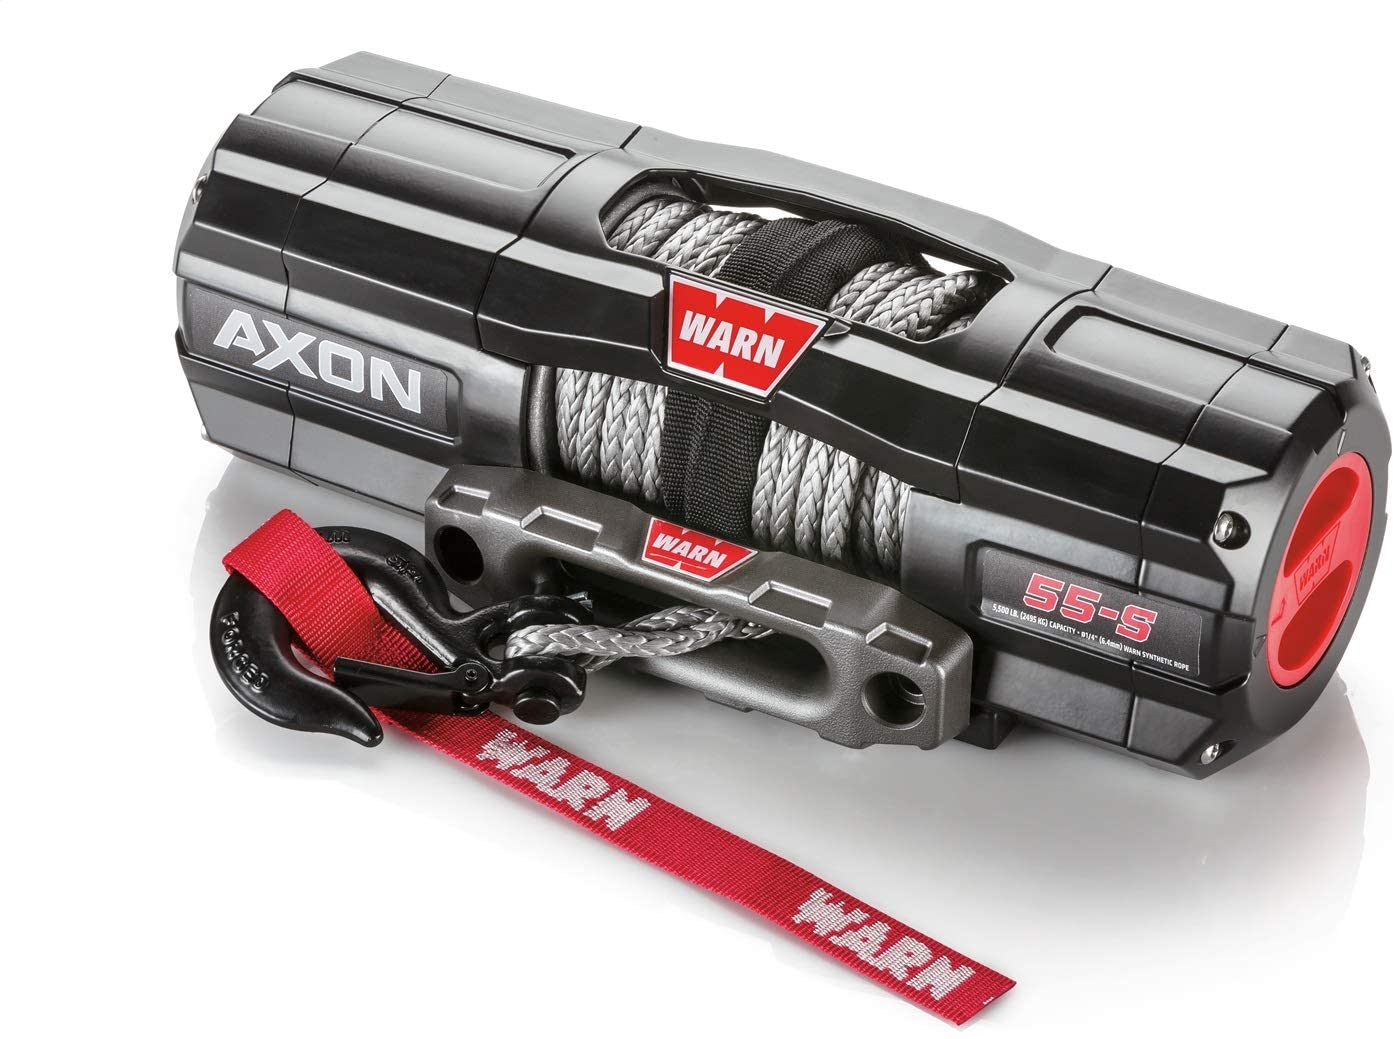 WARN 101150 AXON 55-S Powersports Winch with Spydura Synthetic Cable Rope: 1/4 Diameter x 50 Length, 2.75 Ton (5,500 lb) Pulling Capacity